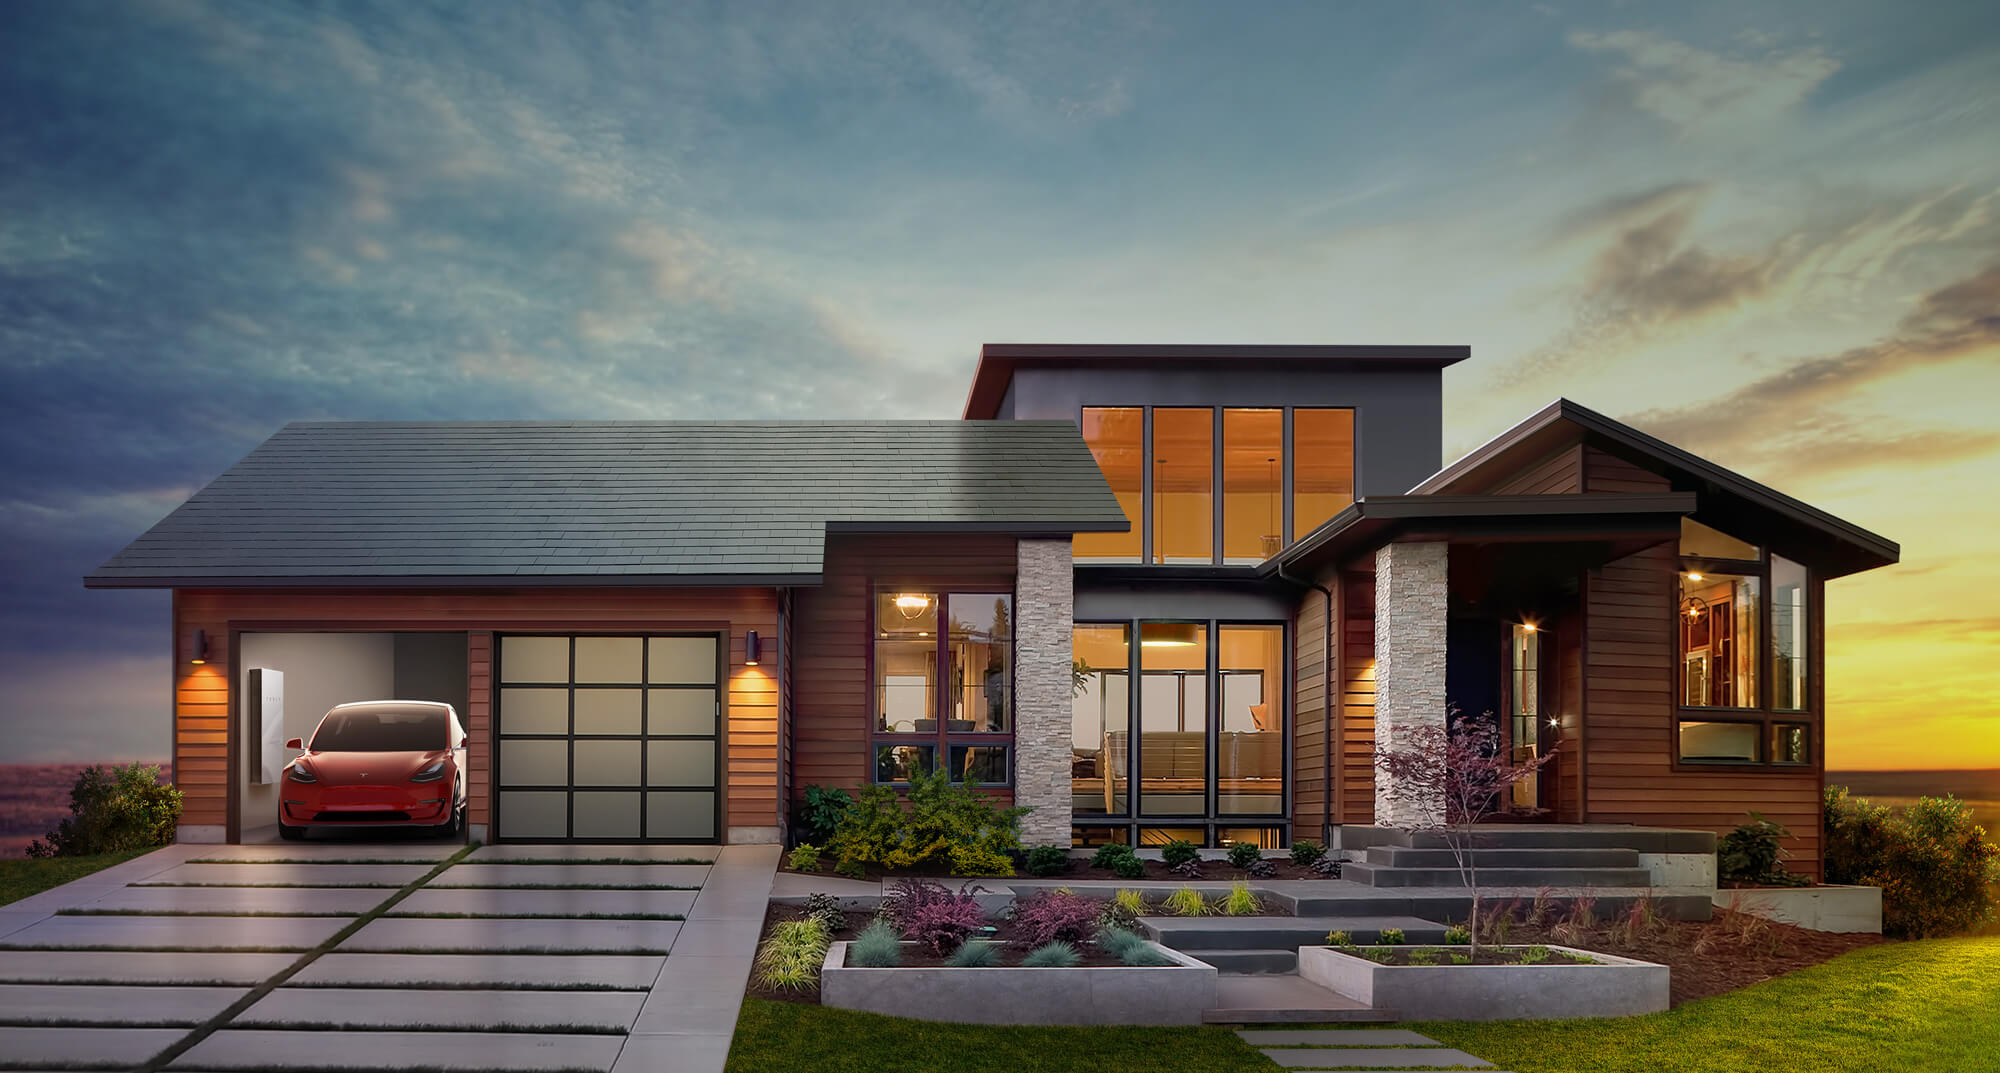 Tesla solar roof installations are now coming online